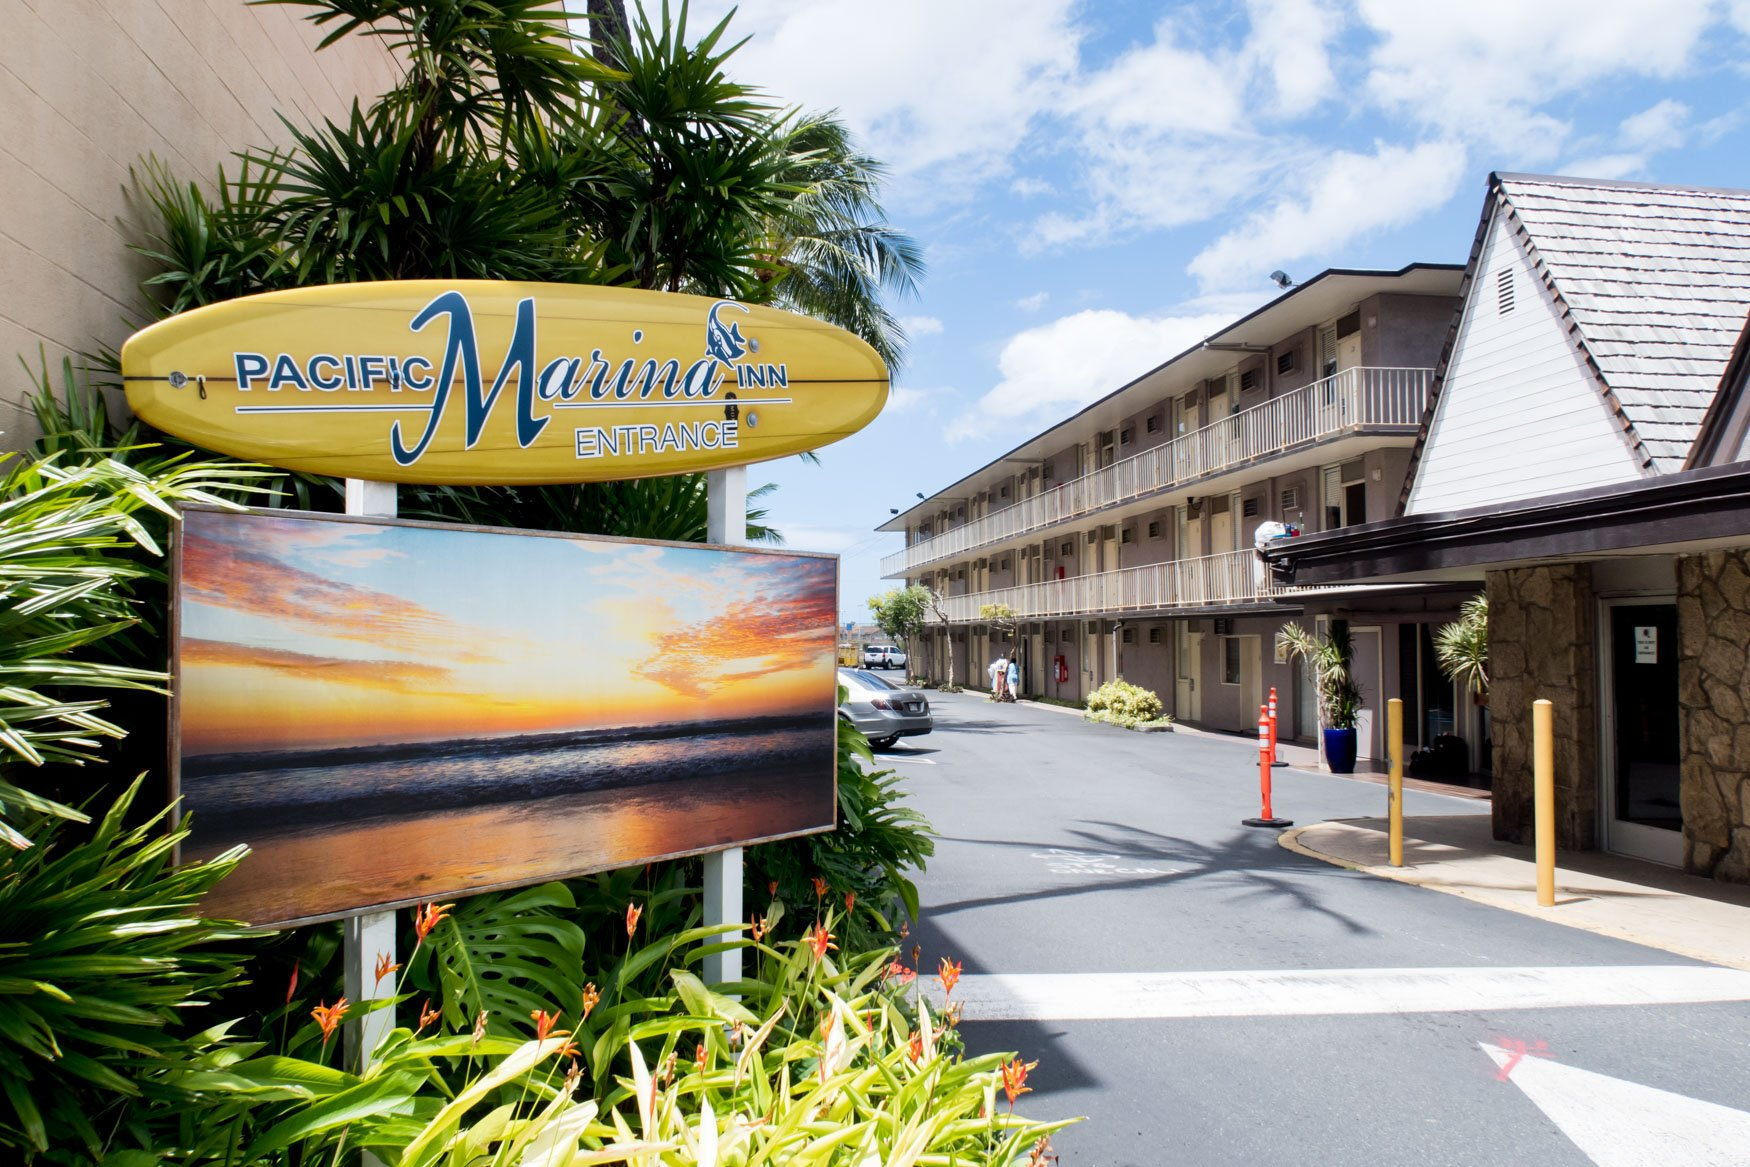 Pacific Marina Inn Entrance